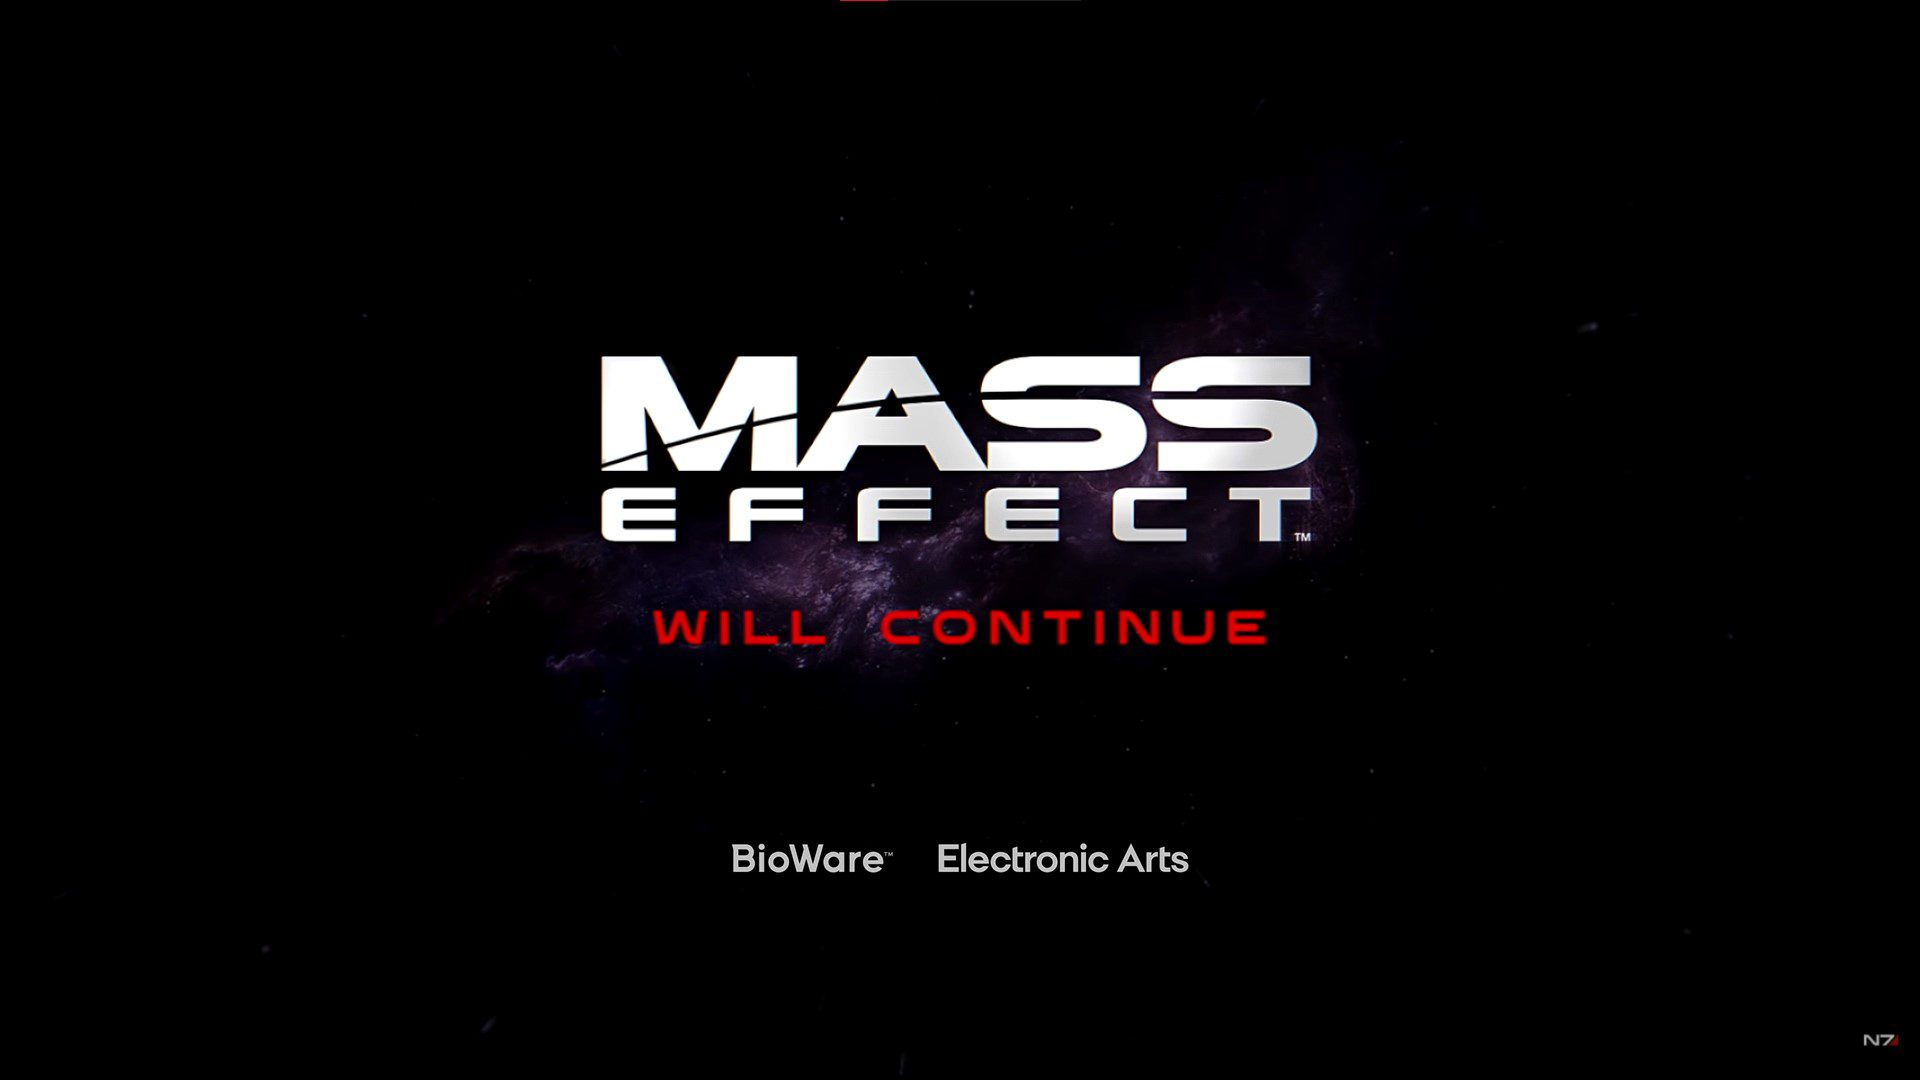 Mass Effect 4: Release Date, Trailer & Everything We Know So Far